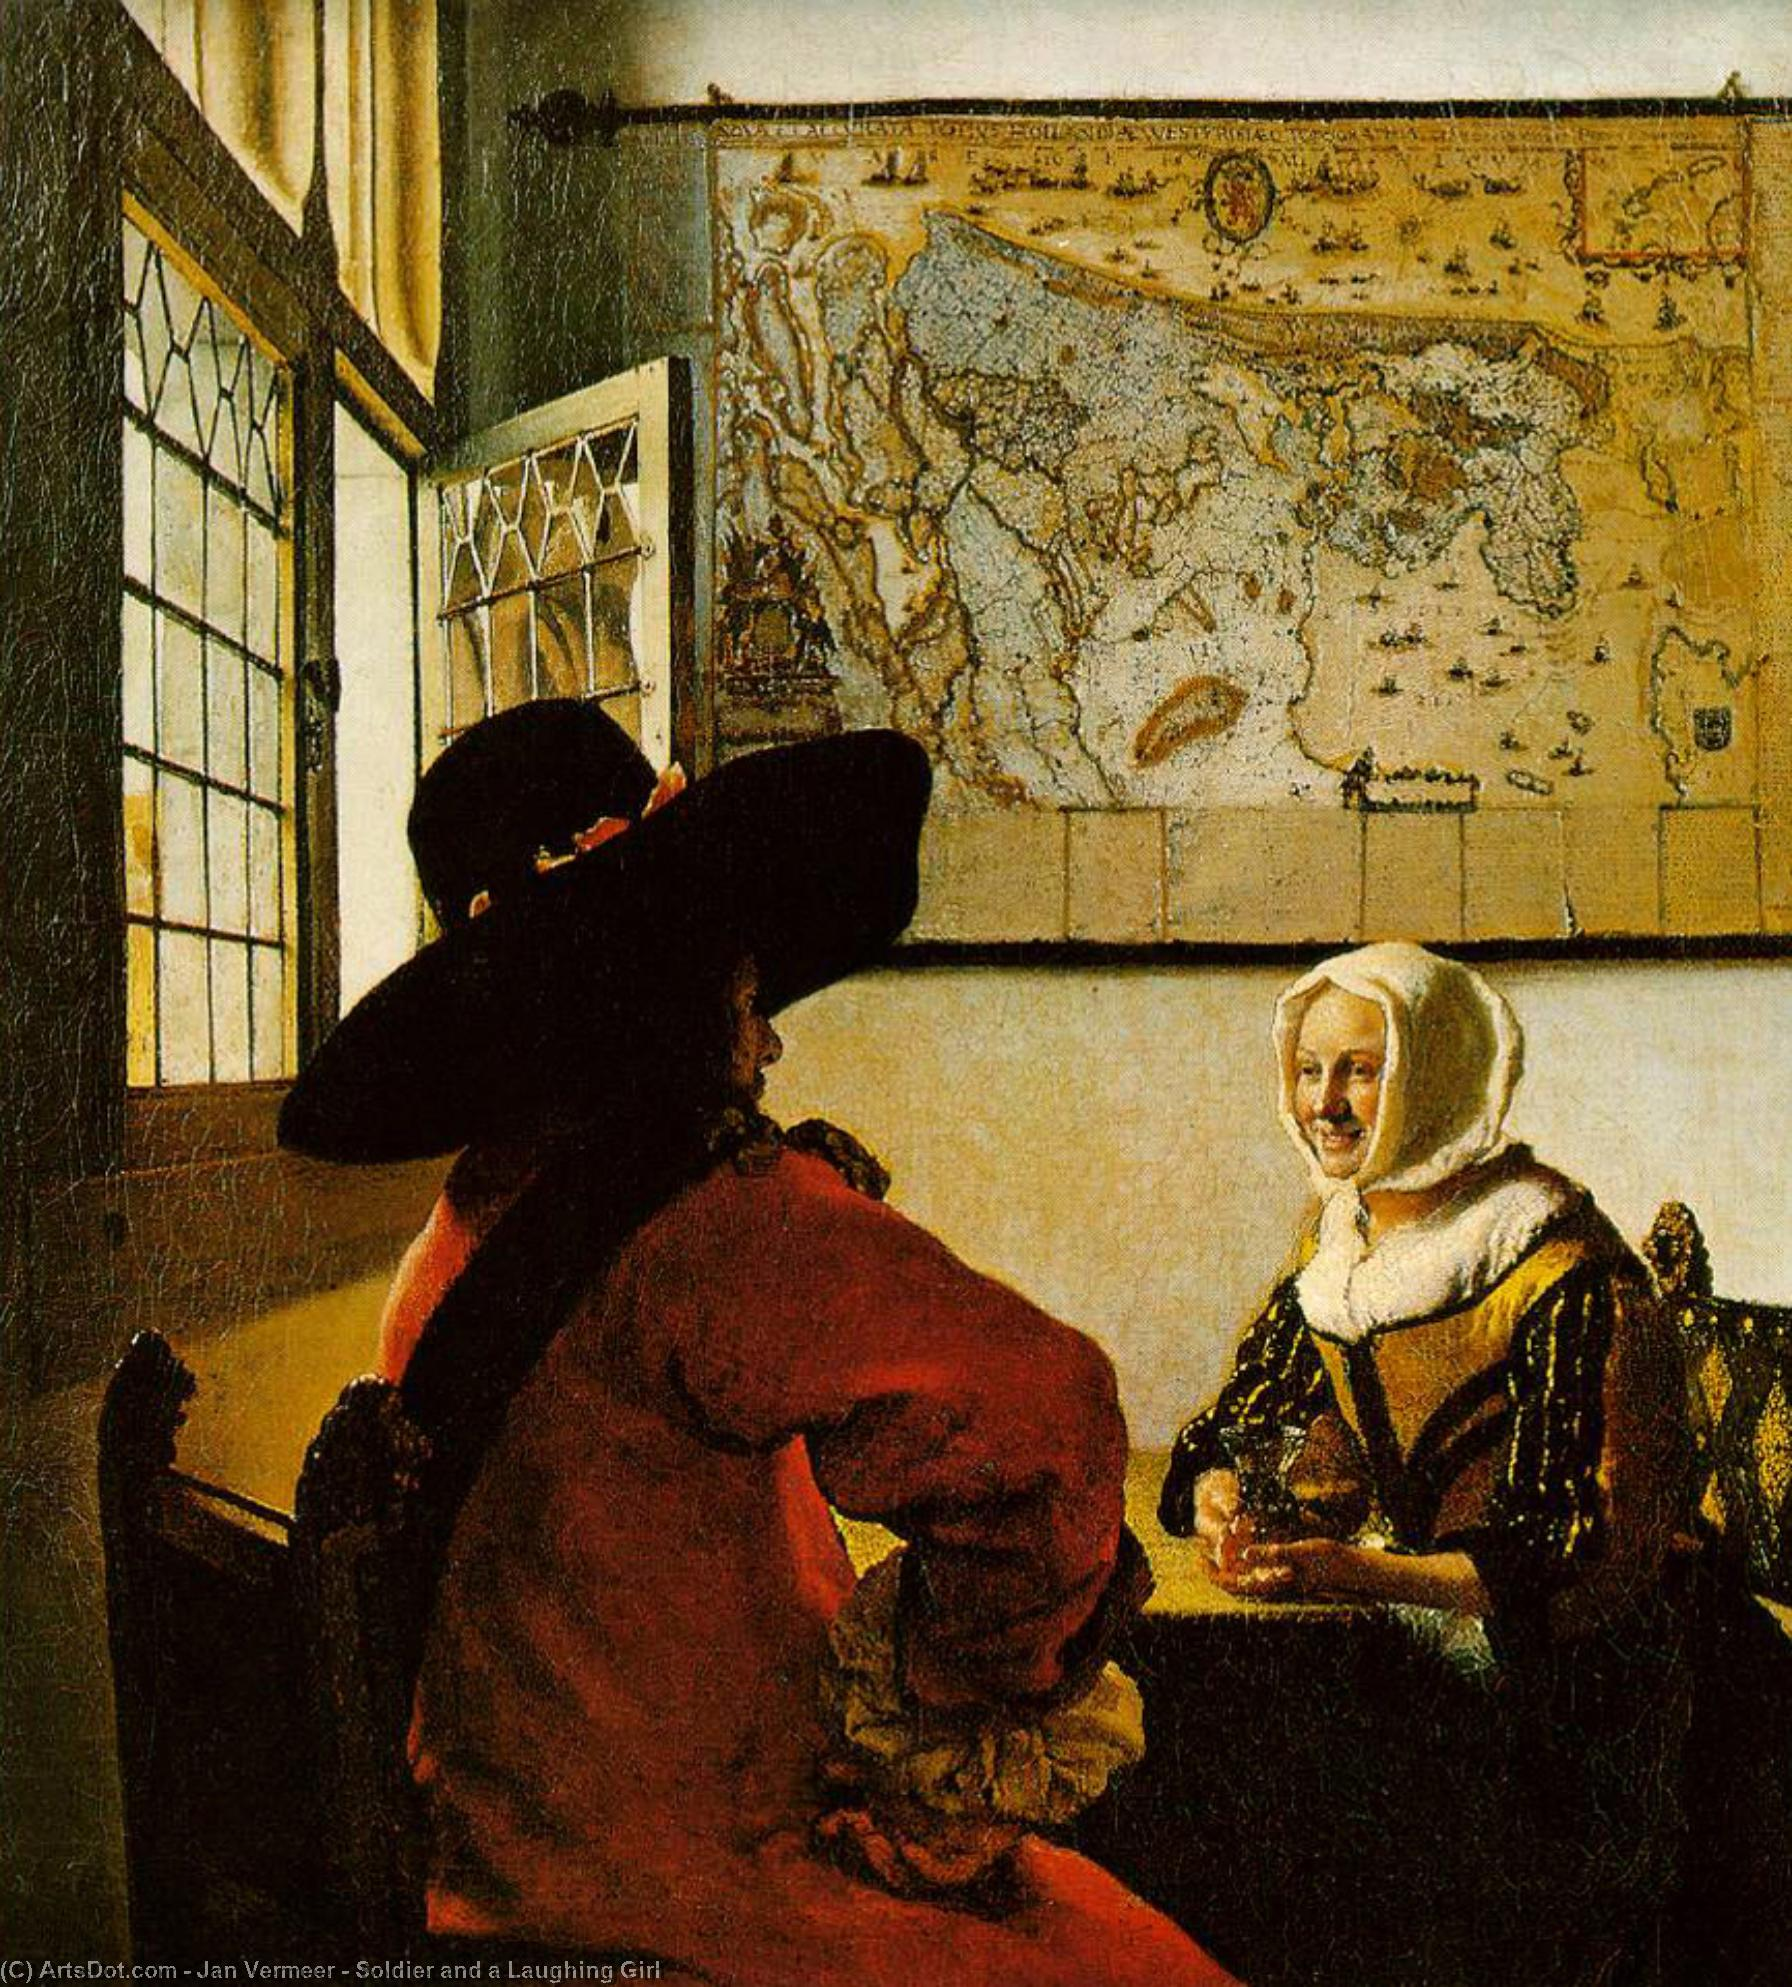 Wikioo.org - The Encyclopedia of Fine Arts - Painting, Artwork by Jan Vermeer - Soldier and a Laughing Girl